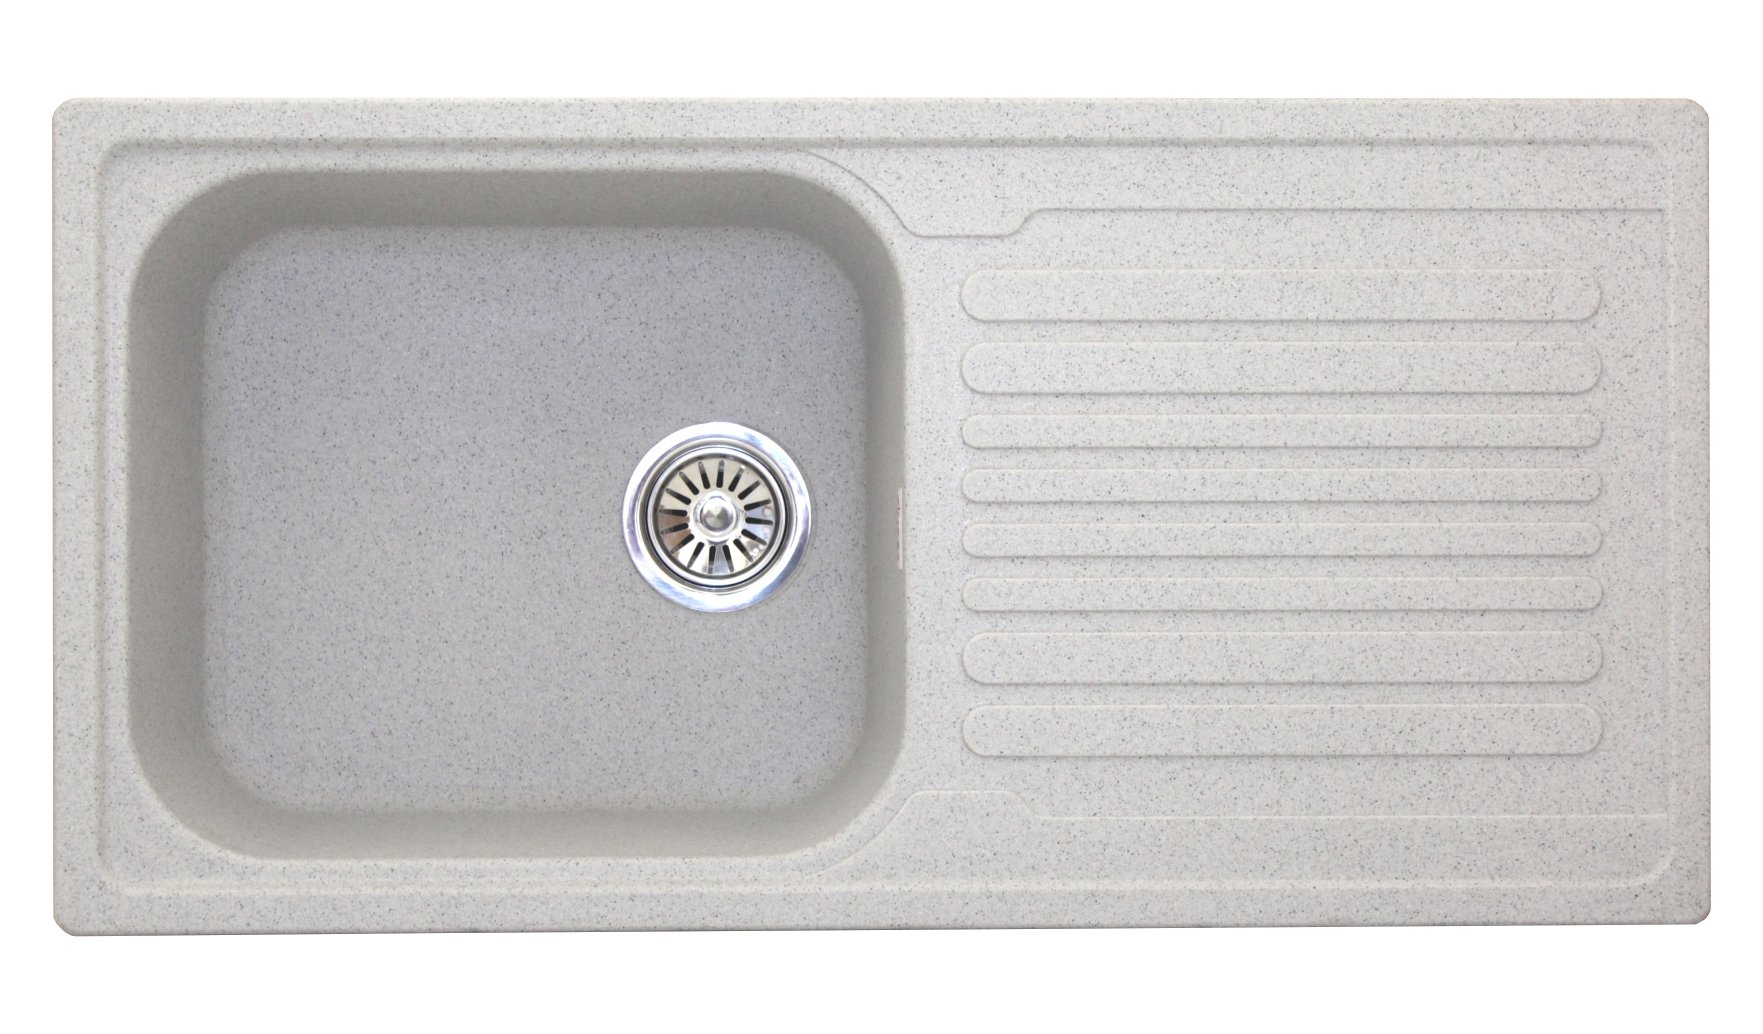 Zinzer Granite Quartz Acrylic Single Bowl Drain Board Granular Kitchen Sink 36 Inch Grey Buy Online In India At Desertcart In Productid 147923728